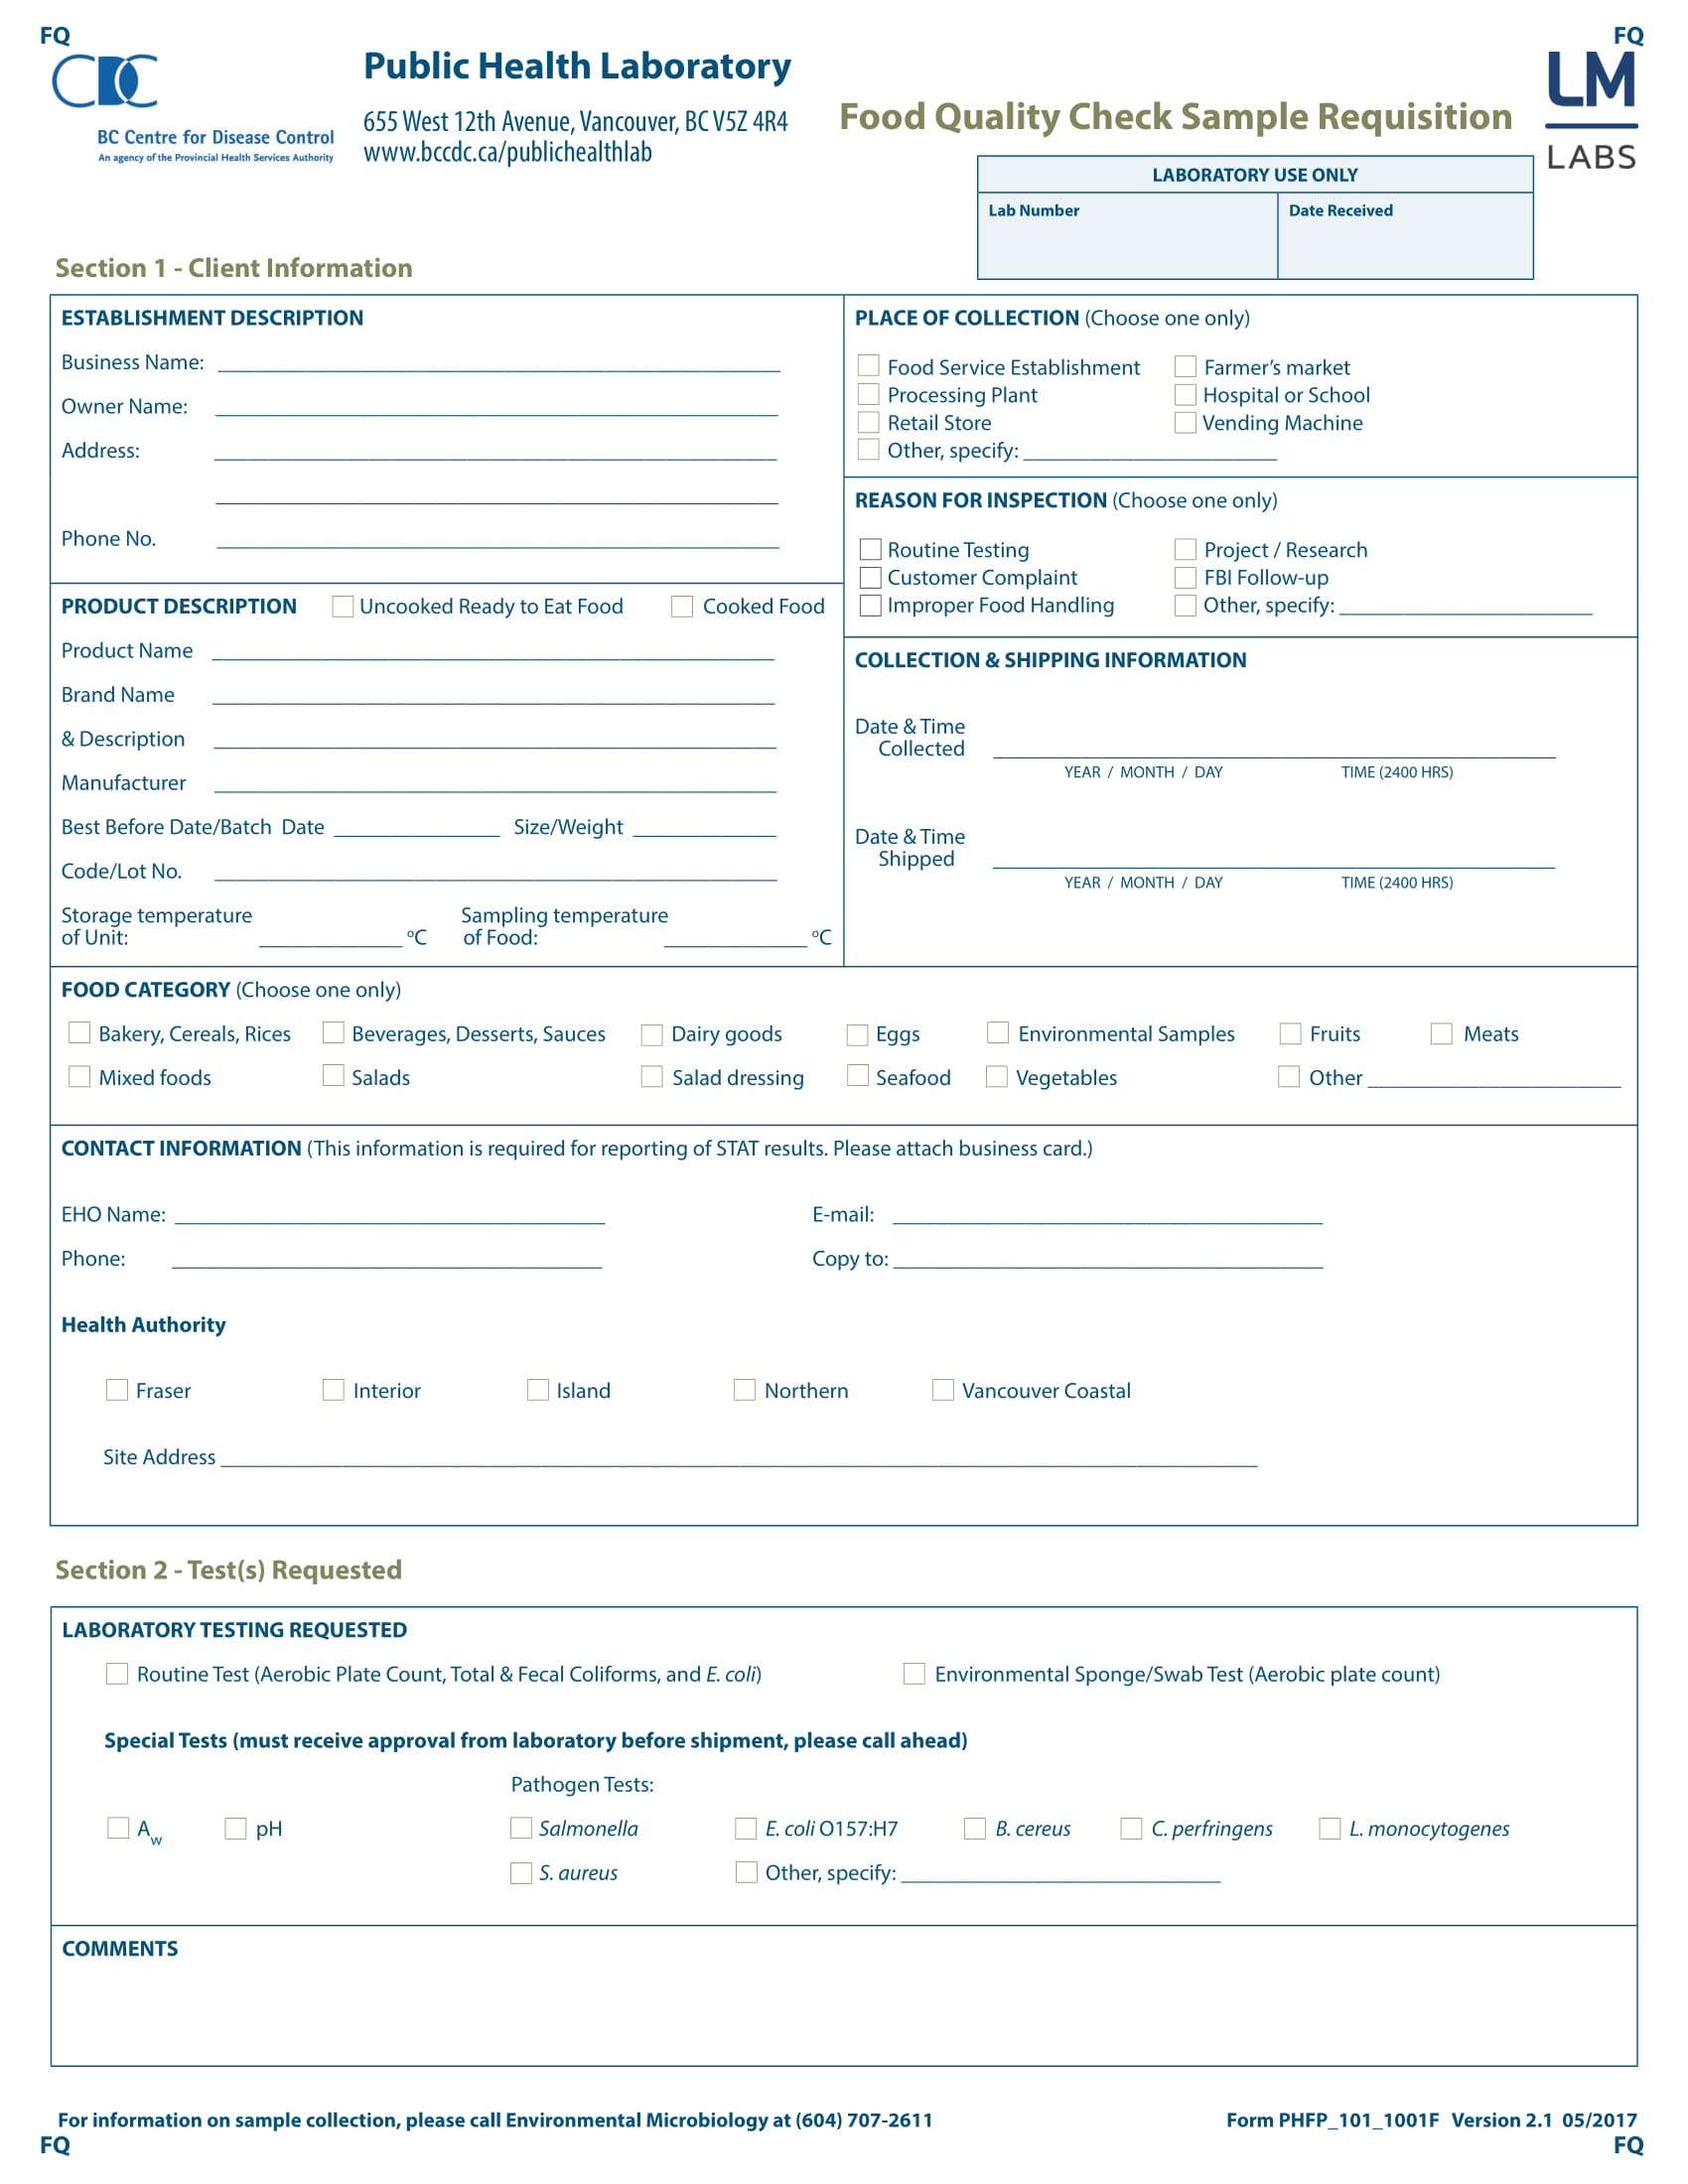 food quality check requisition form 1